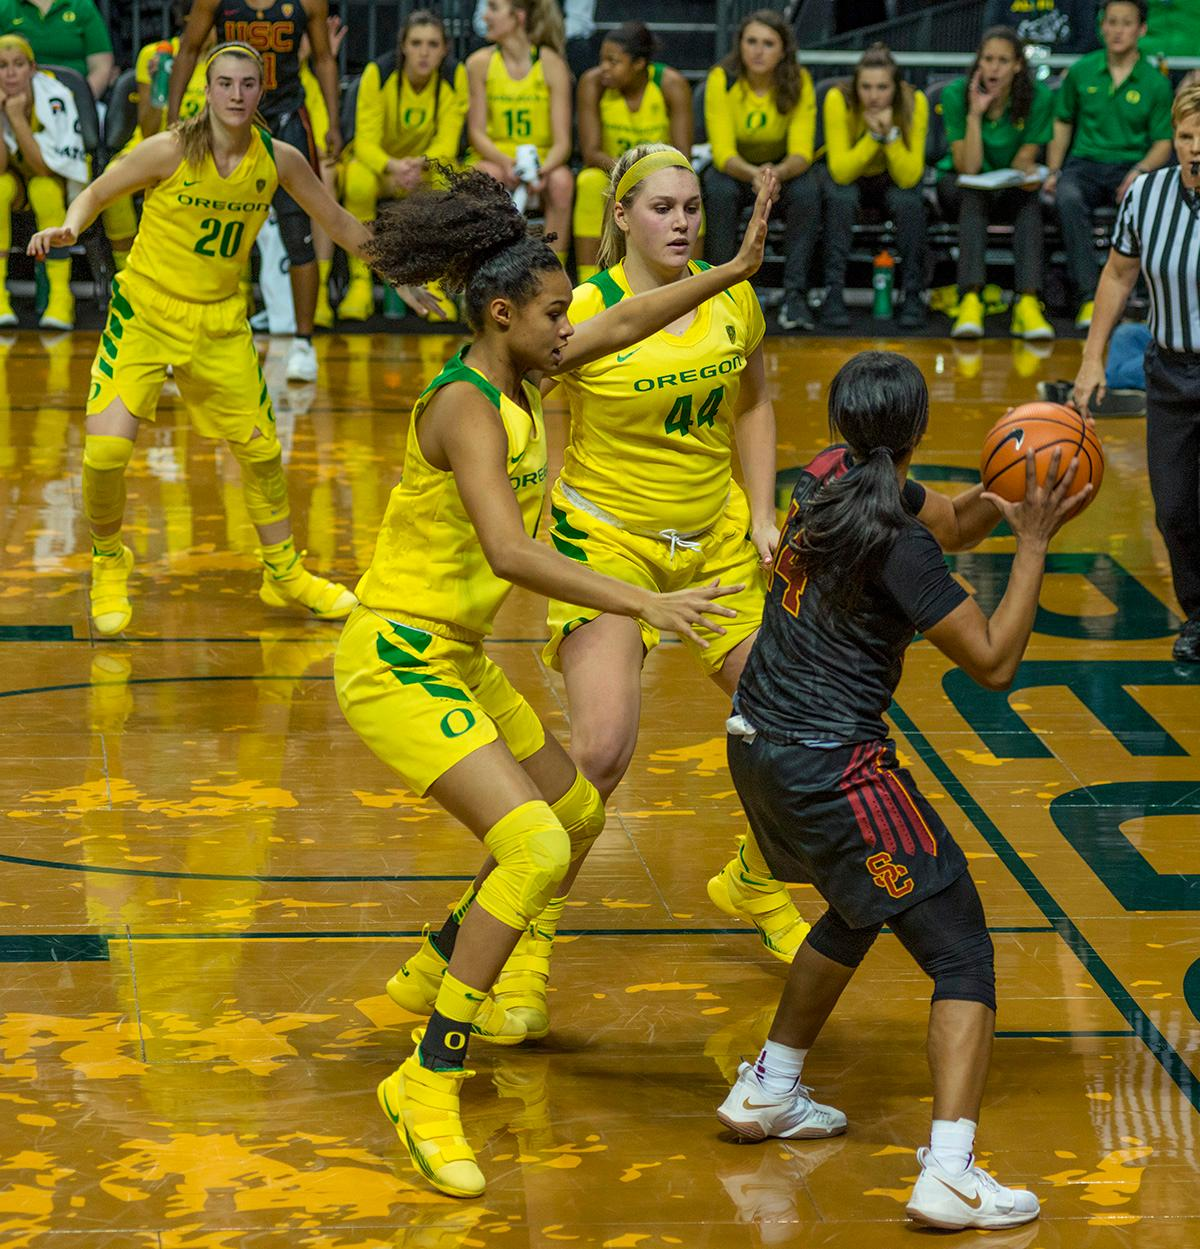 Oregon Ducks Satou Sabally (#0, left) and Mallory McGwire (#44) close in on USC Trojans Sadie Edwards (#14). The Oregon Ducks defeated the USC Trojans 80-74 on Friday at Matthew Knight Arena in a game that went into double overtime. Lexi Bando sealed the Ducks' victory by scoring a three-pointer in the closing of the game. Ruthy Hebard set a new NCAA record of 30 consecutive field goals over three games, the old record being 28. Ruthy Hebard got a double-double with 27 points and 10 rebounds, Mallory McGwire also had 10 rebounds. The Ducks had four players in double digits: Ruthy Hebard with 27; Maite Cazorla with 17; Sabrina Ionescu with 15; and Lexi Bando with 11. The Ducks are now 24-4, 13-2 in the Pac-12, and are tied for first with Stanford. Photo by Dan Morrison, Oregon News Lab